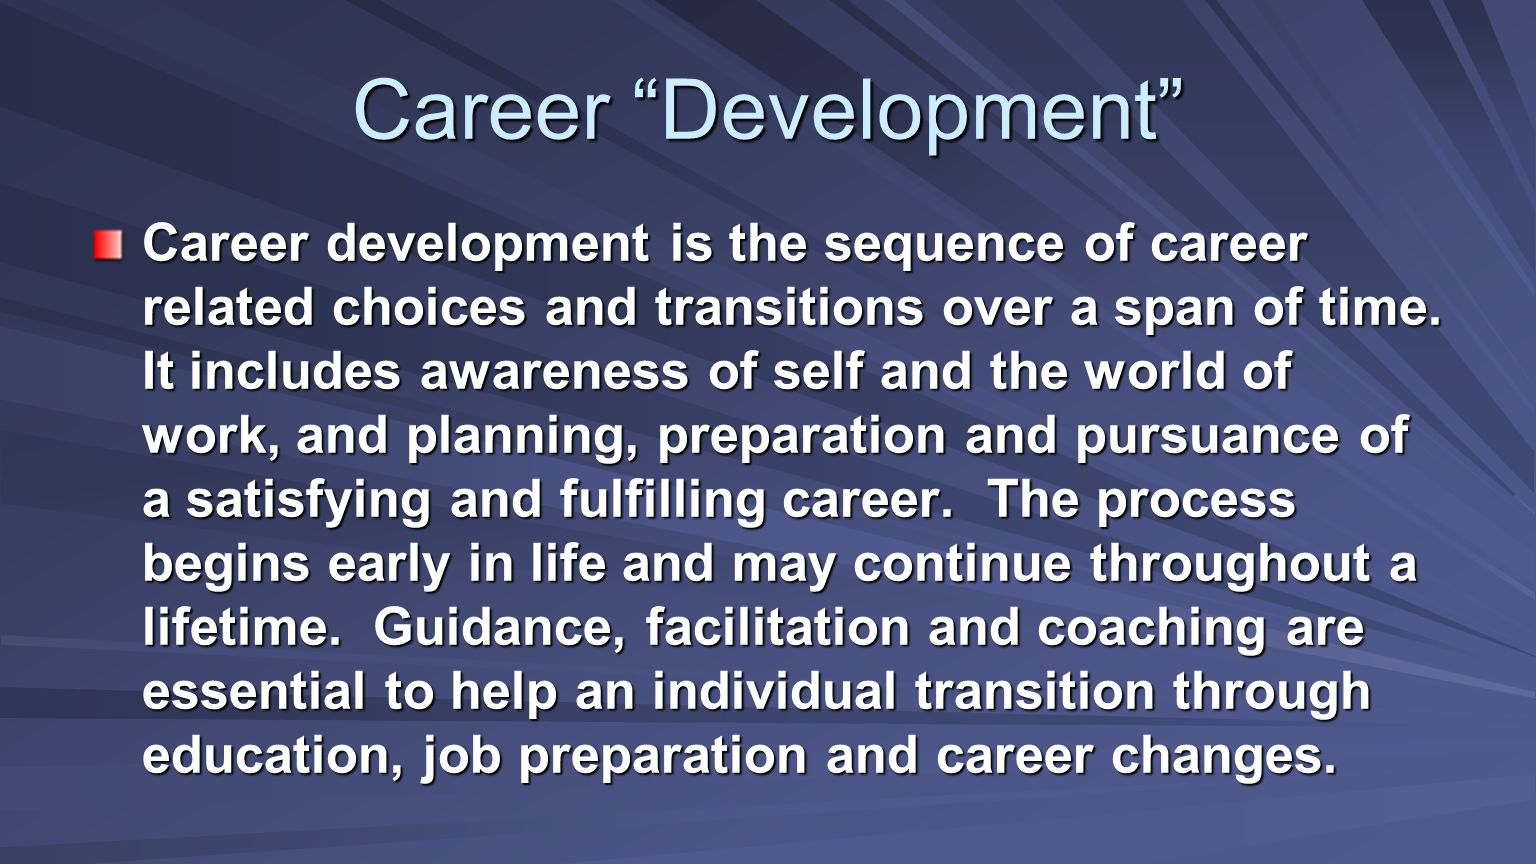 Career Development Career development is the sequence of career related choices and transitions over a span of time. It includes awareness of self and